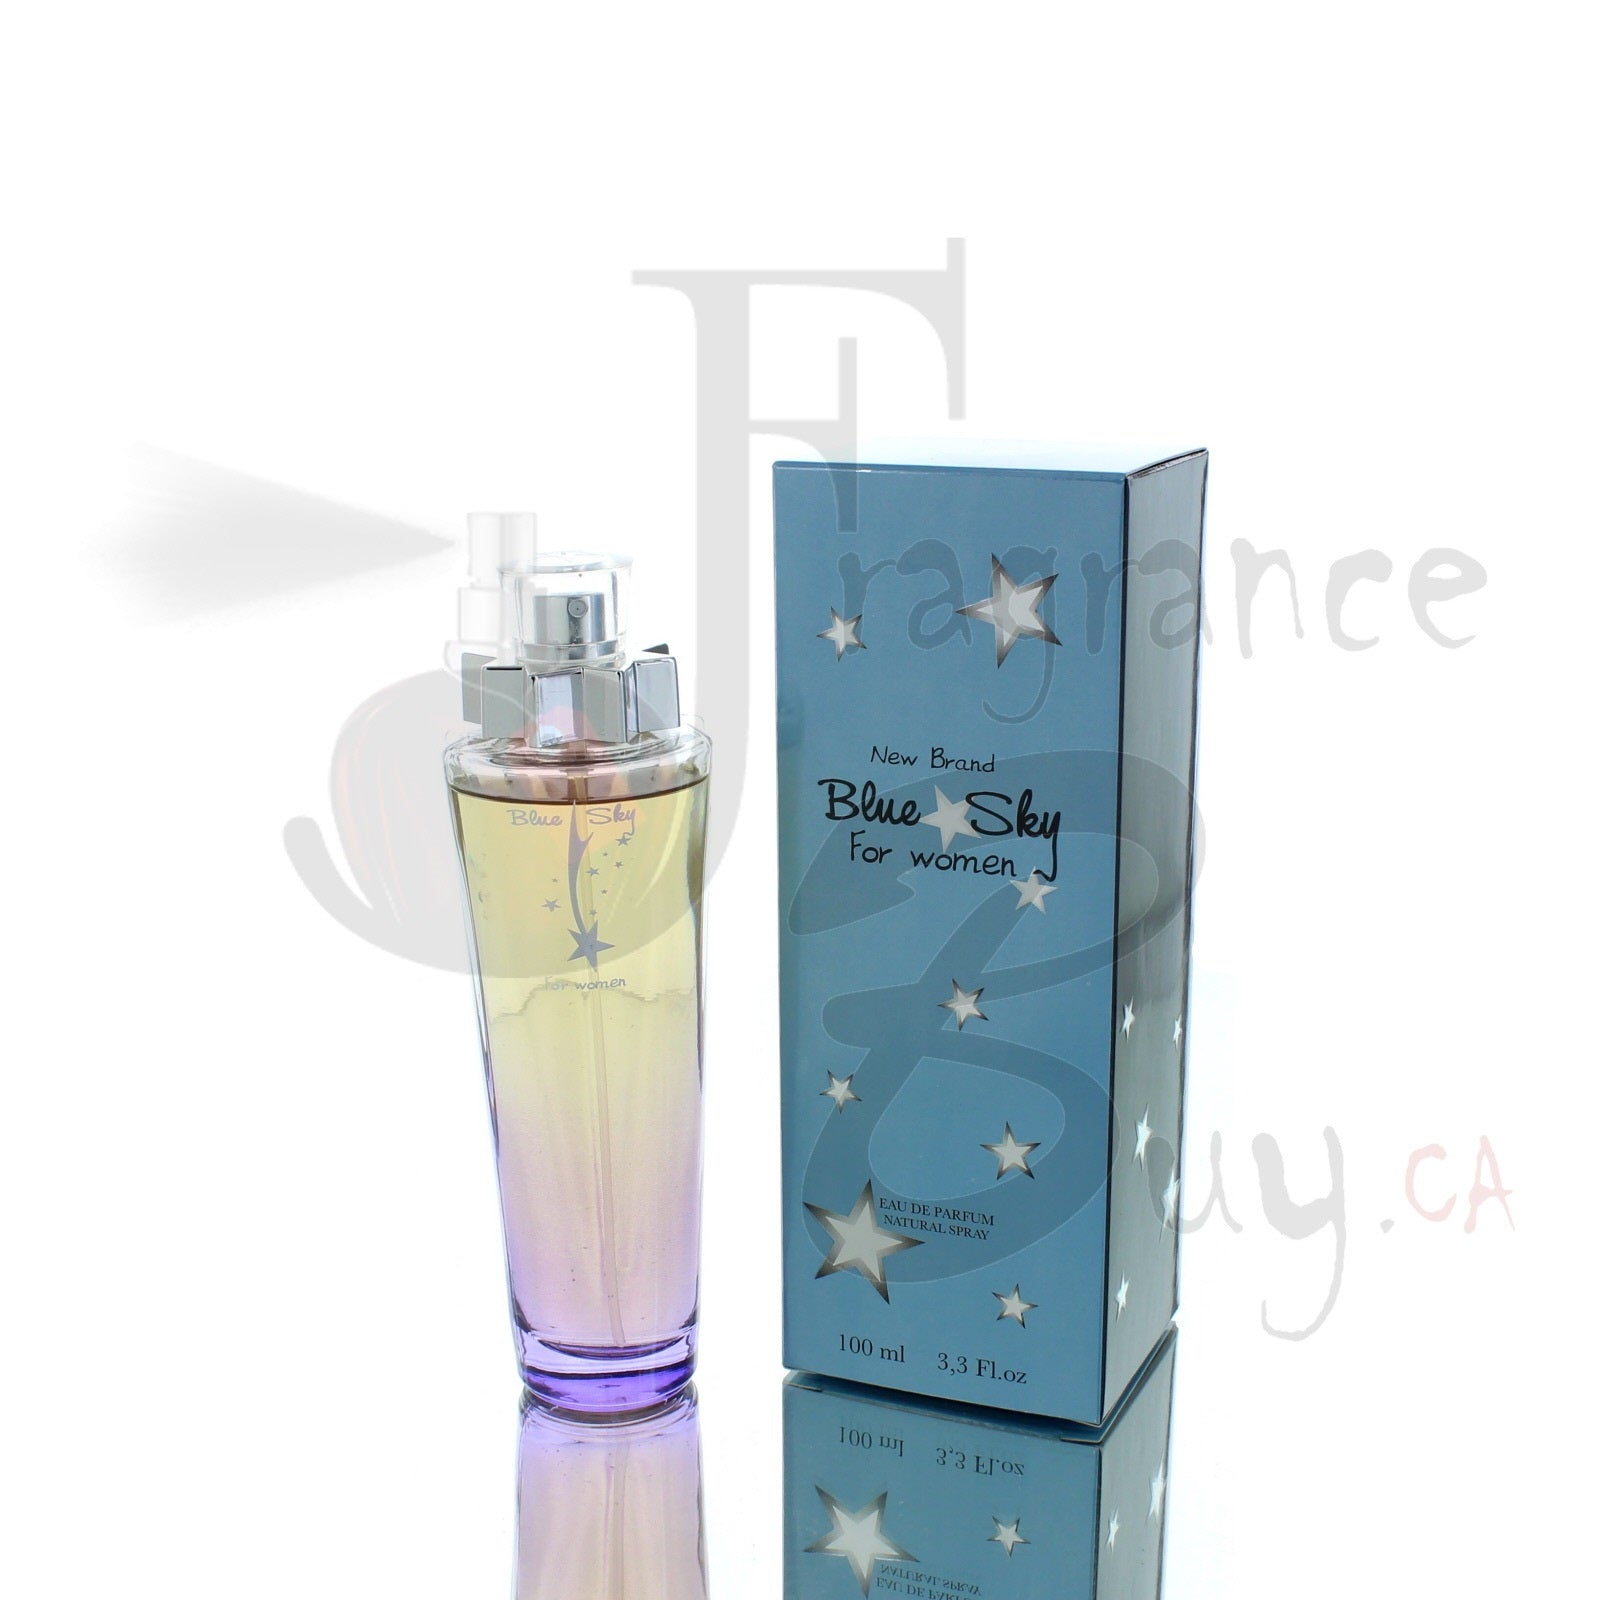 Blue Sky by New Brand (Angel Twist) For Woman